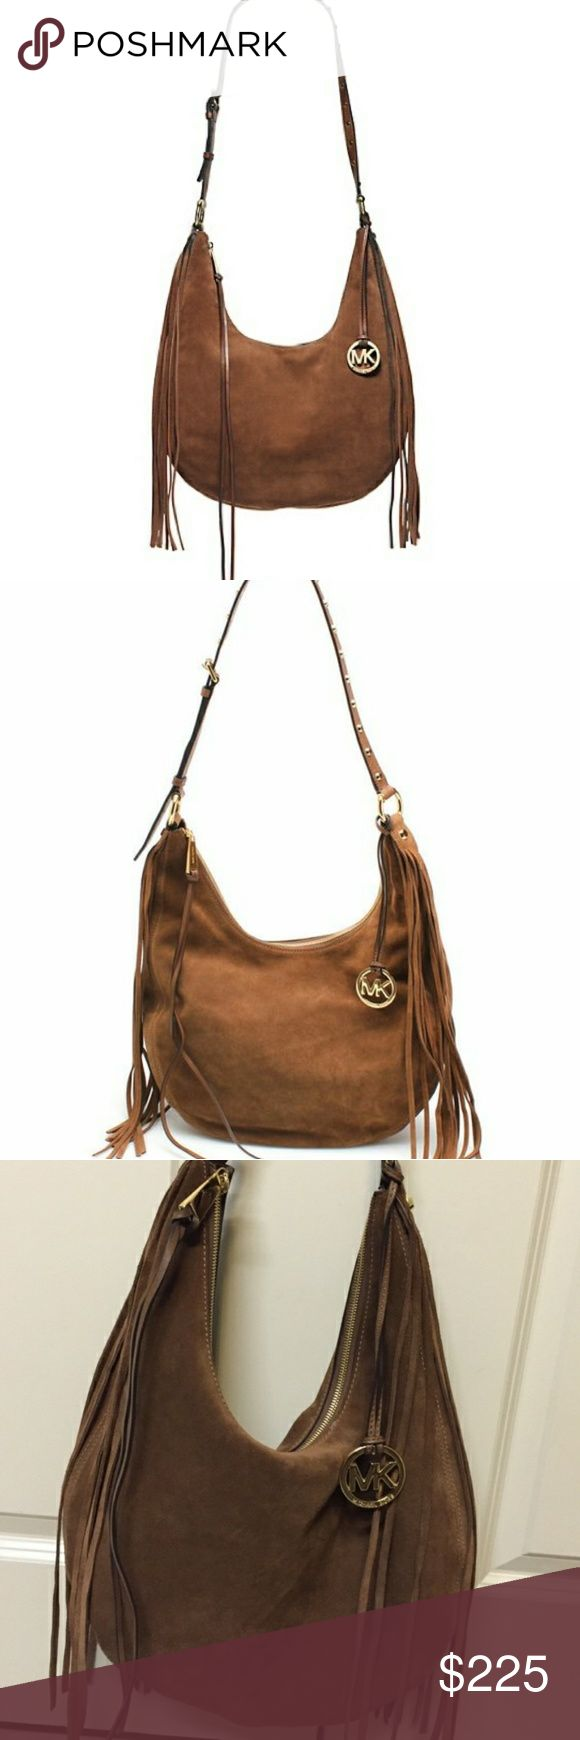 "Michael kors caramel Rhea hobo Beautiful suede slouchy hobo in excellent used condition. This is an original Rhea bag that was first introduced a few years ago.  The ones they sell in stores now have a different lining inside.  Material: Suede  Color: Dark Caramel  Gold~Tone Hardware  Adjustable Shoulder Strap w/ 23""Drop  Top Zip Closure  Long Fringe On Both Sides  MK Hanging Logo Charm is scratch free  Approx. Measurements: L 15""x H 11""x D 3""  This bag is in excellent condition.  Looks…"